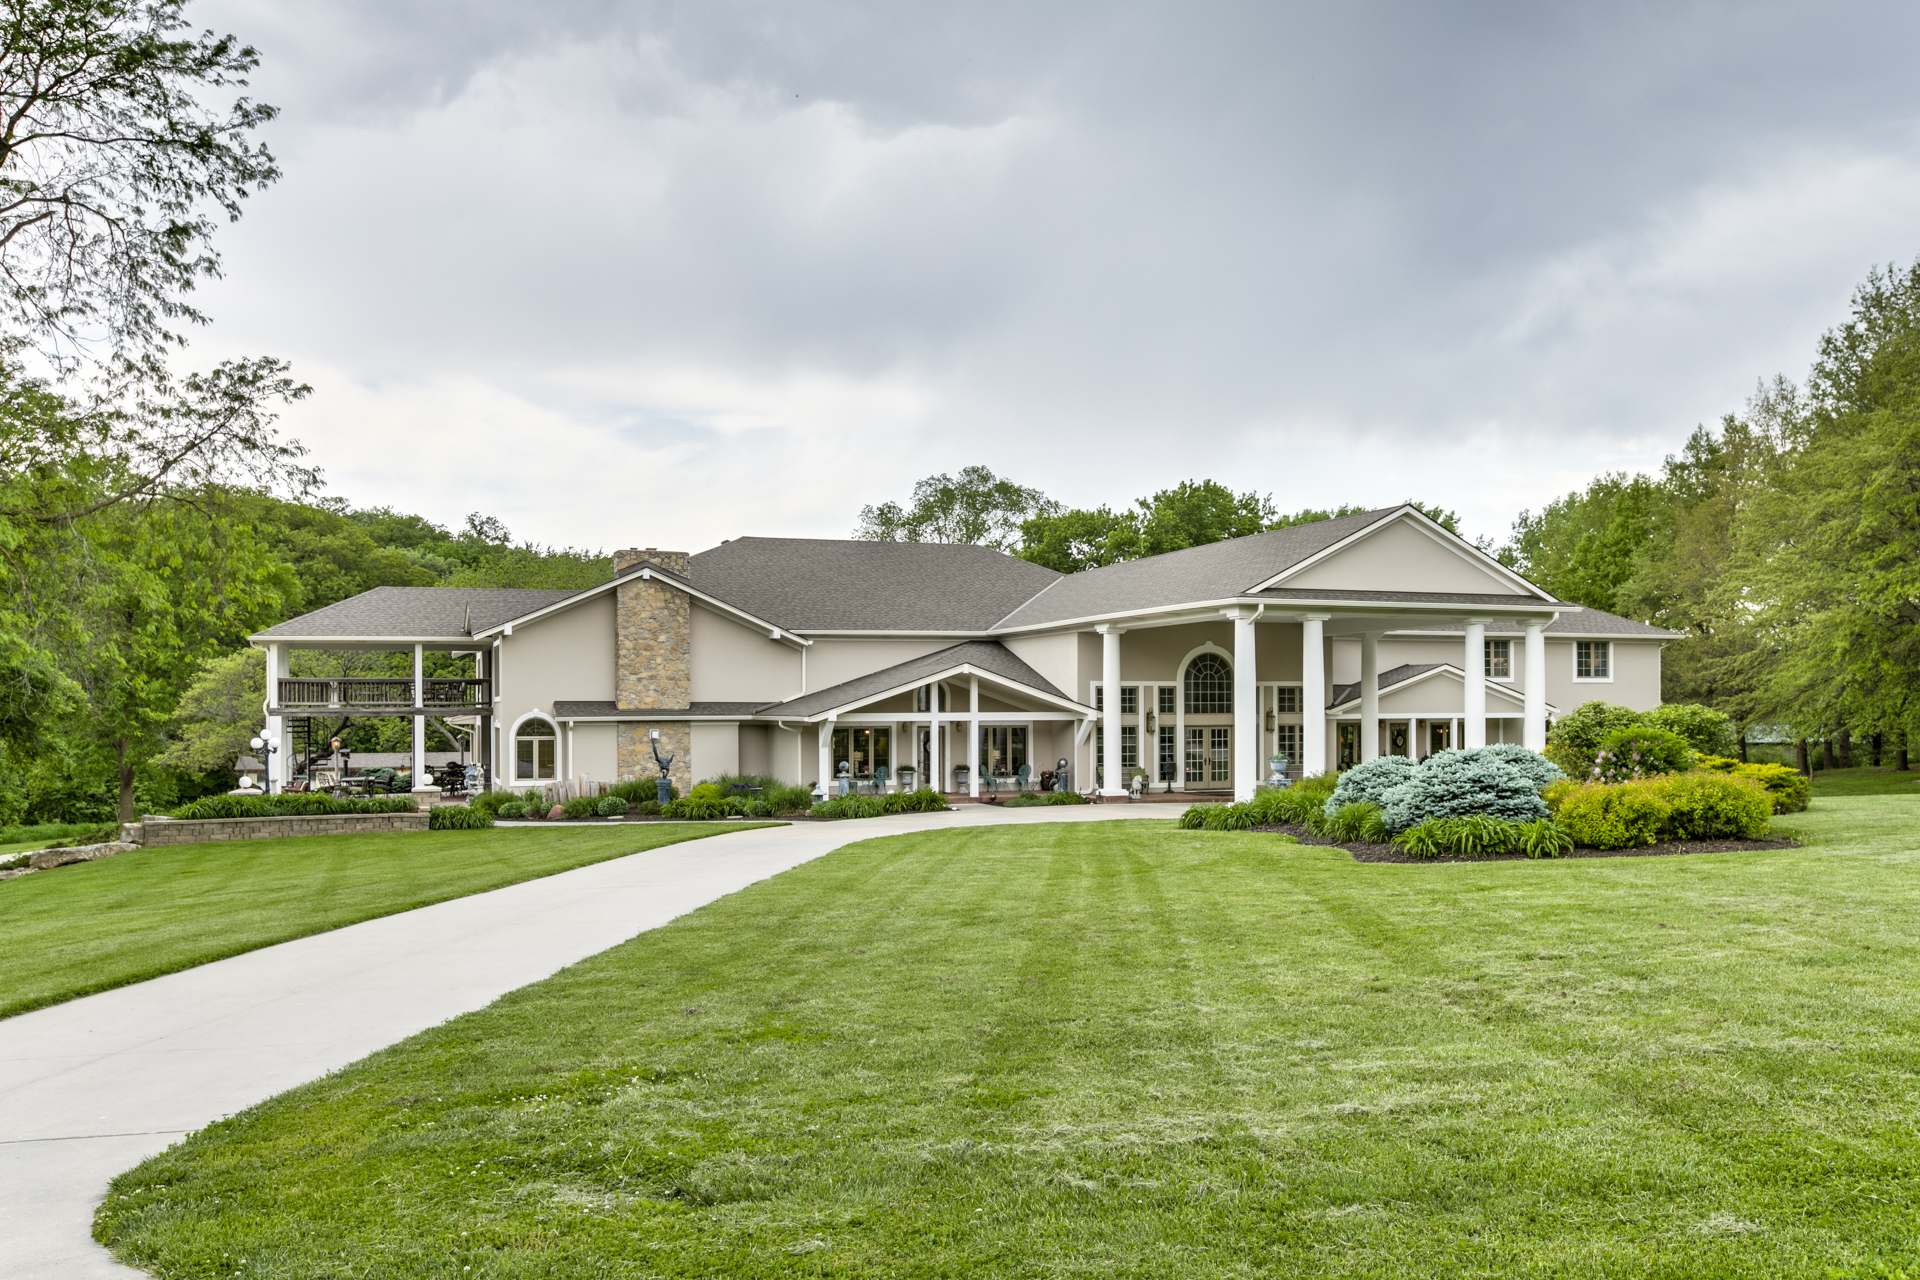 Luxury Homes for Sale around Omaha and Lincoln Nebraska